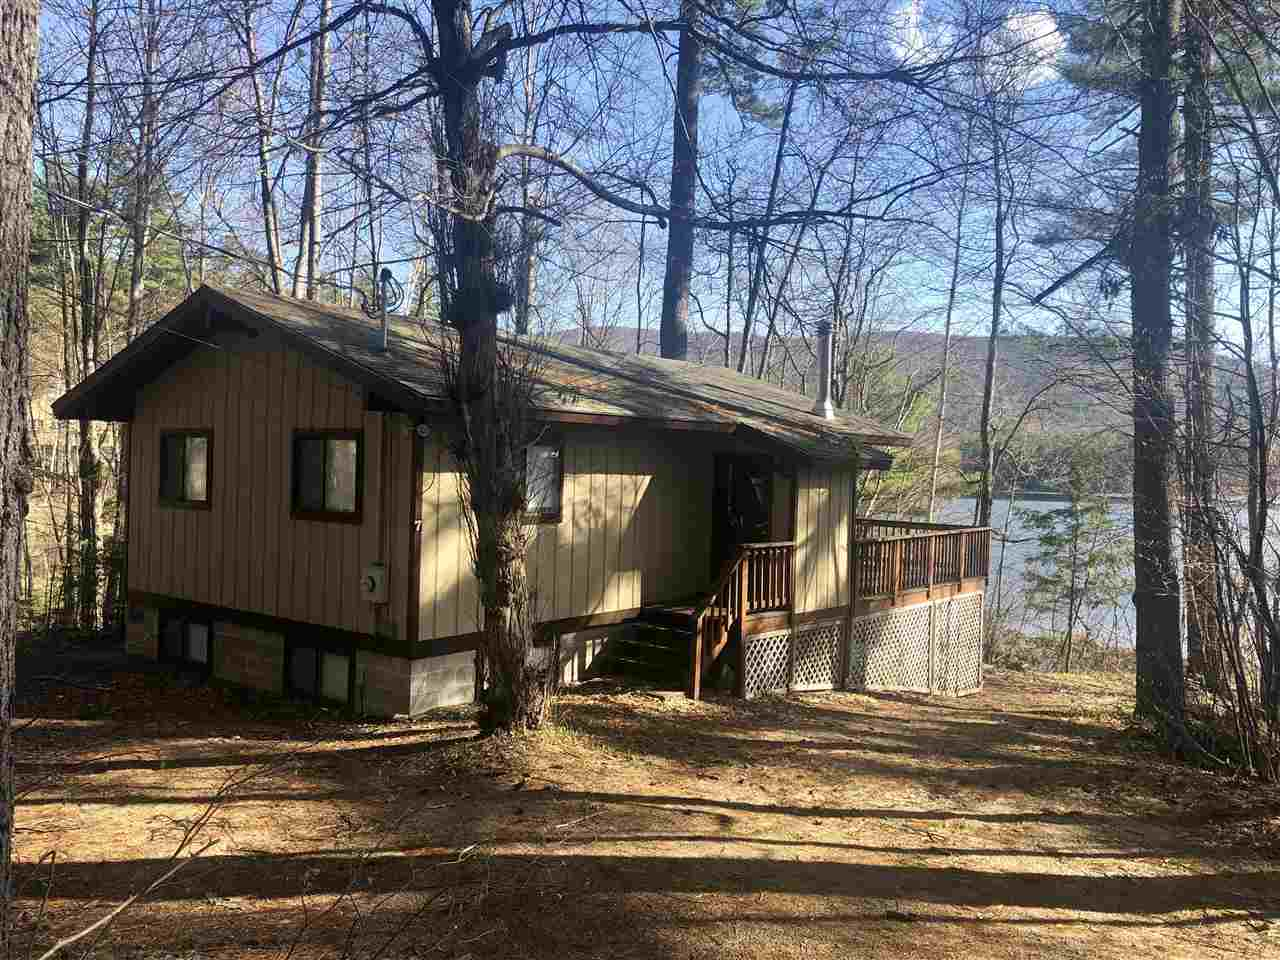 MLS 4744660: 7 Nettie Way, Moultonborough NH